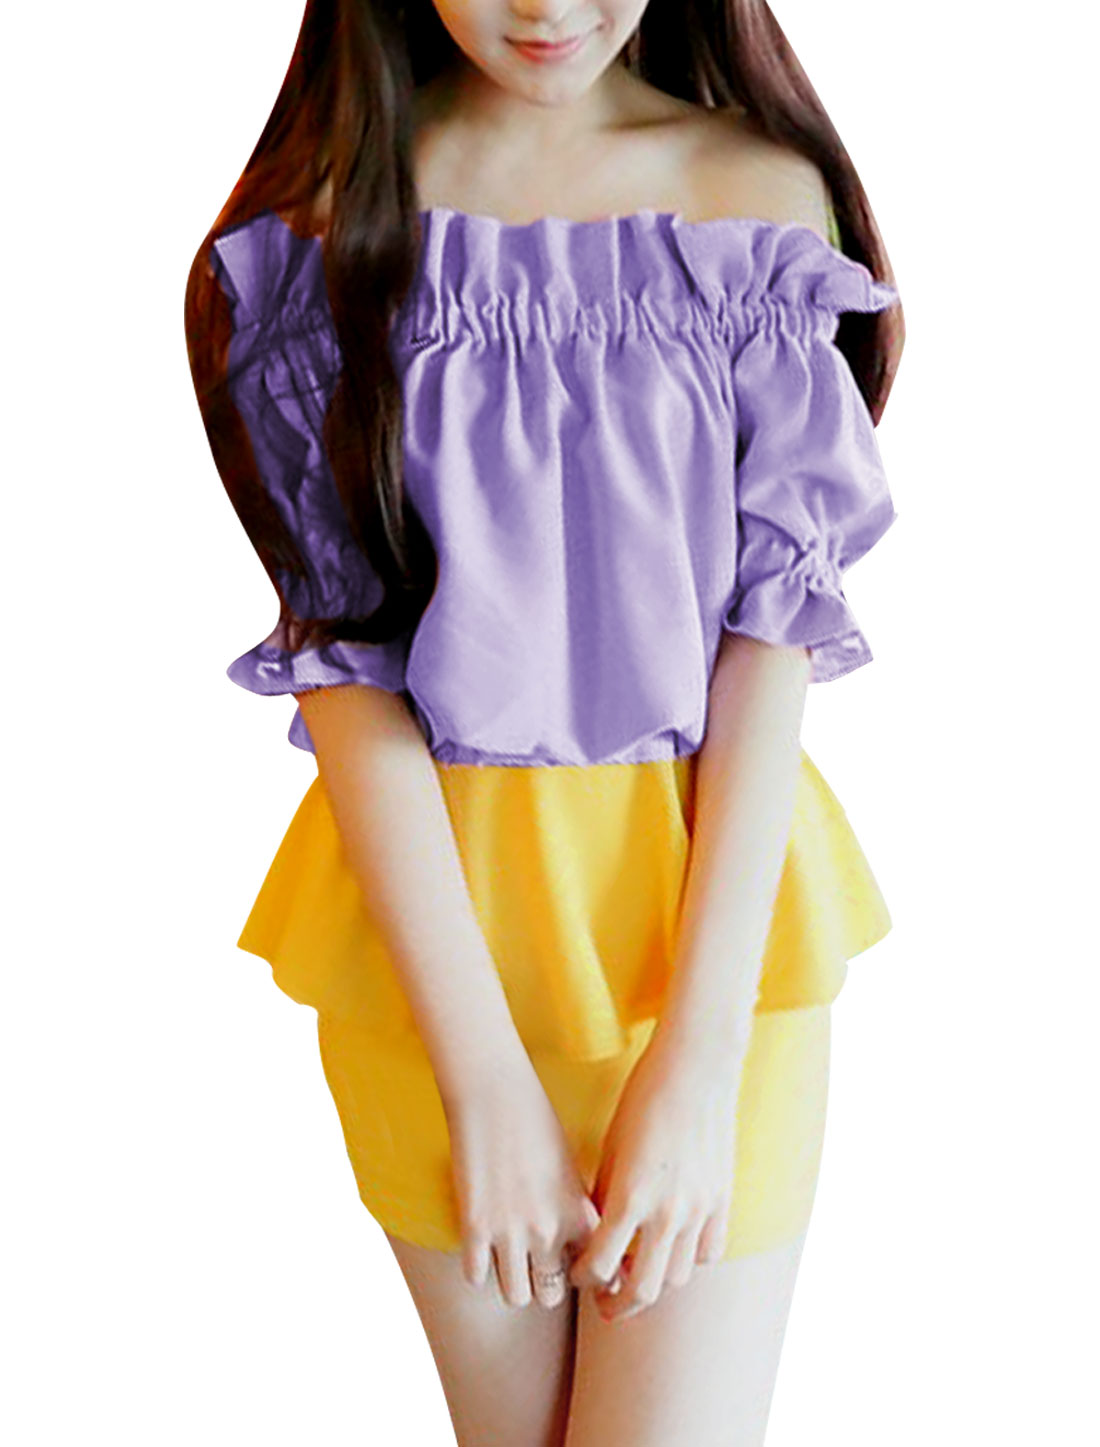 New Fashion Pure Lavender Off-Shoulder Design Ruffled Blouse S for Lady